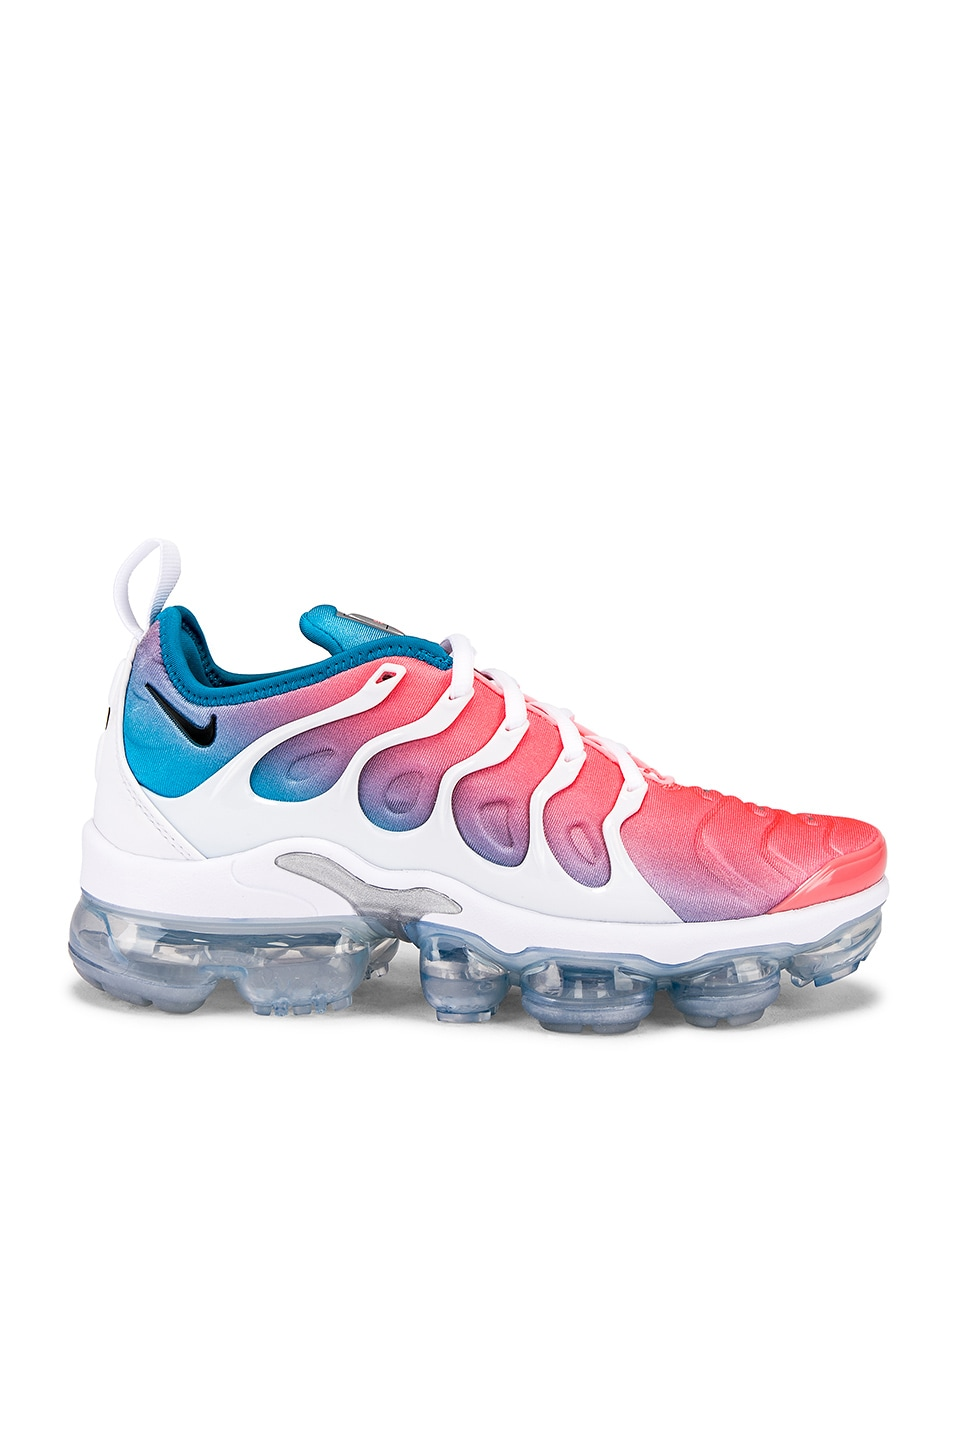 0aa35e27d04c Nike Women s Air Vapormax Plus Casual Shoes